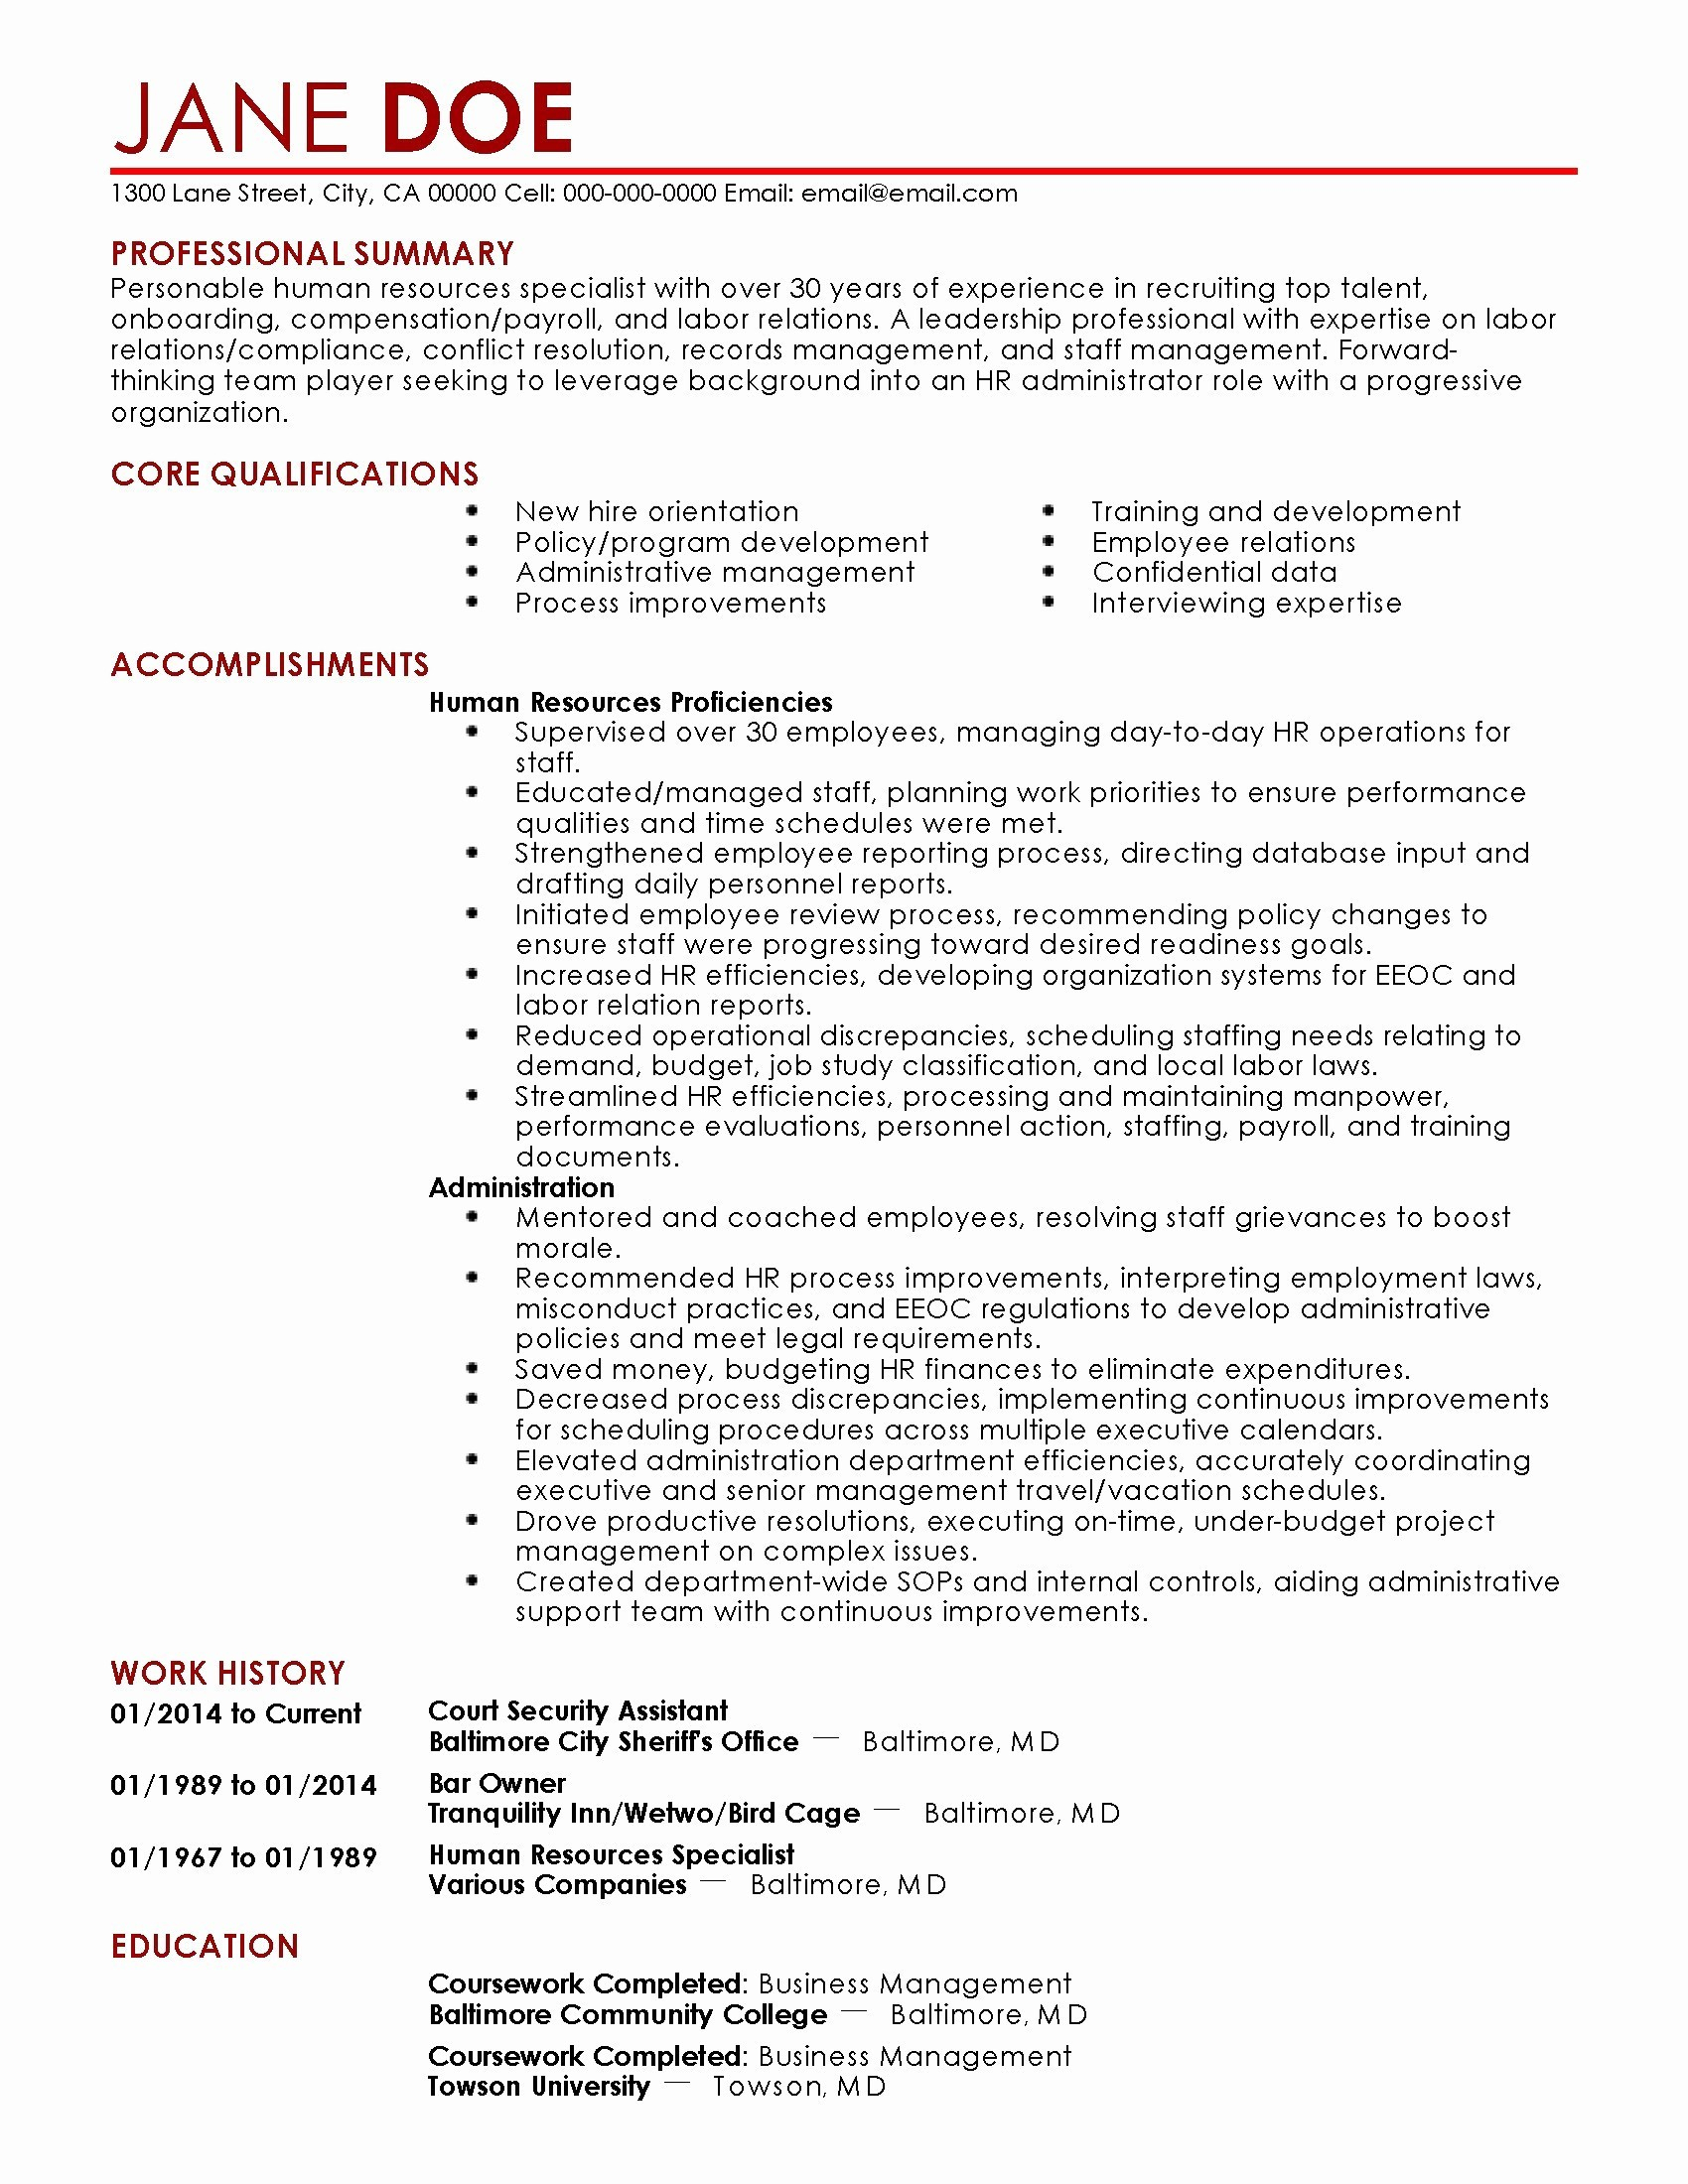 medical assistant resume template example-Medical assistant resume template lovely medical assistant resumes new medical resumes 0d bizmancan 15-p